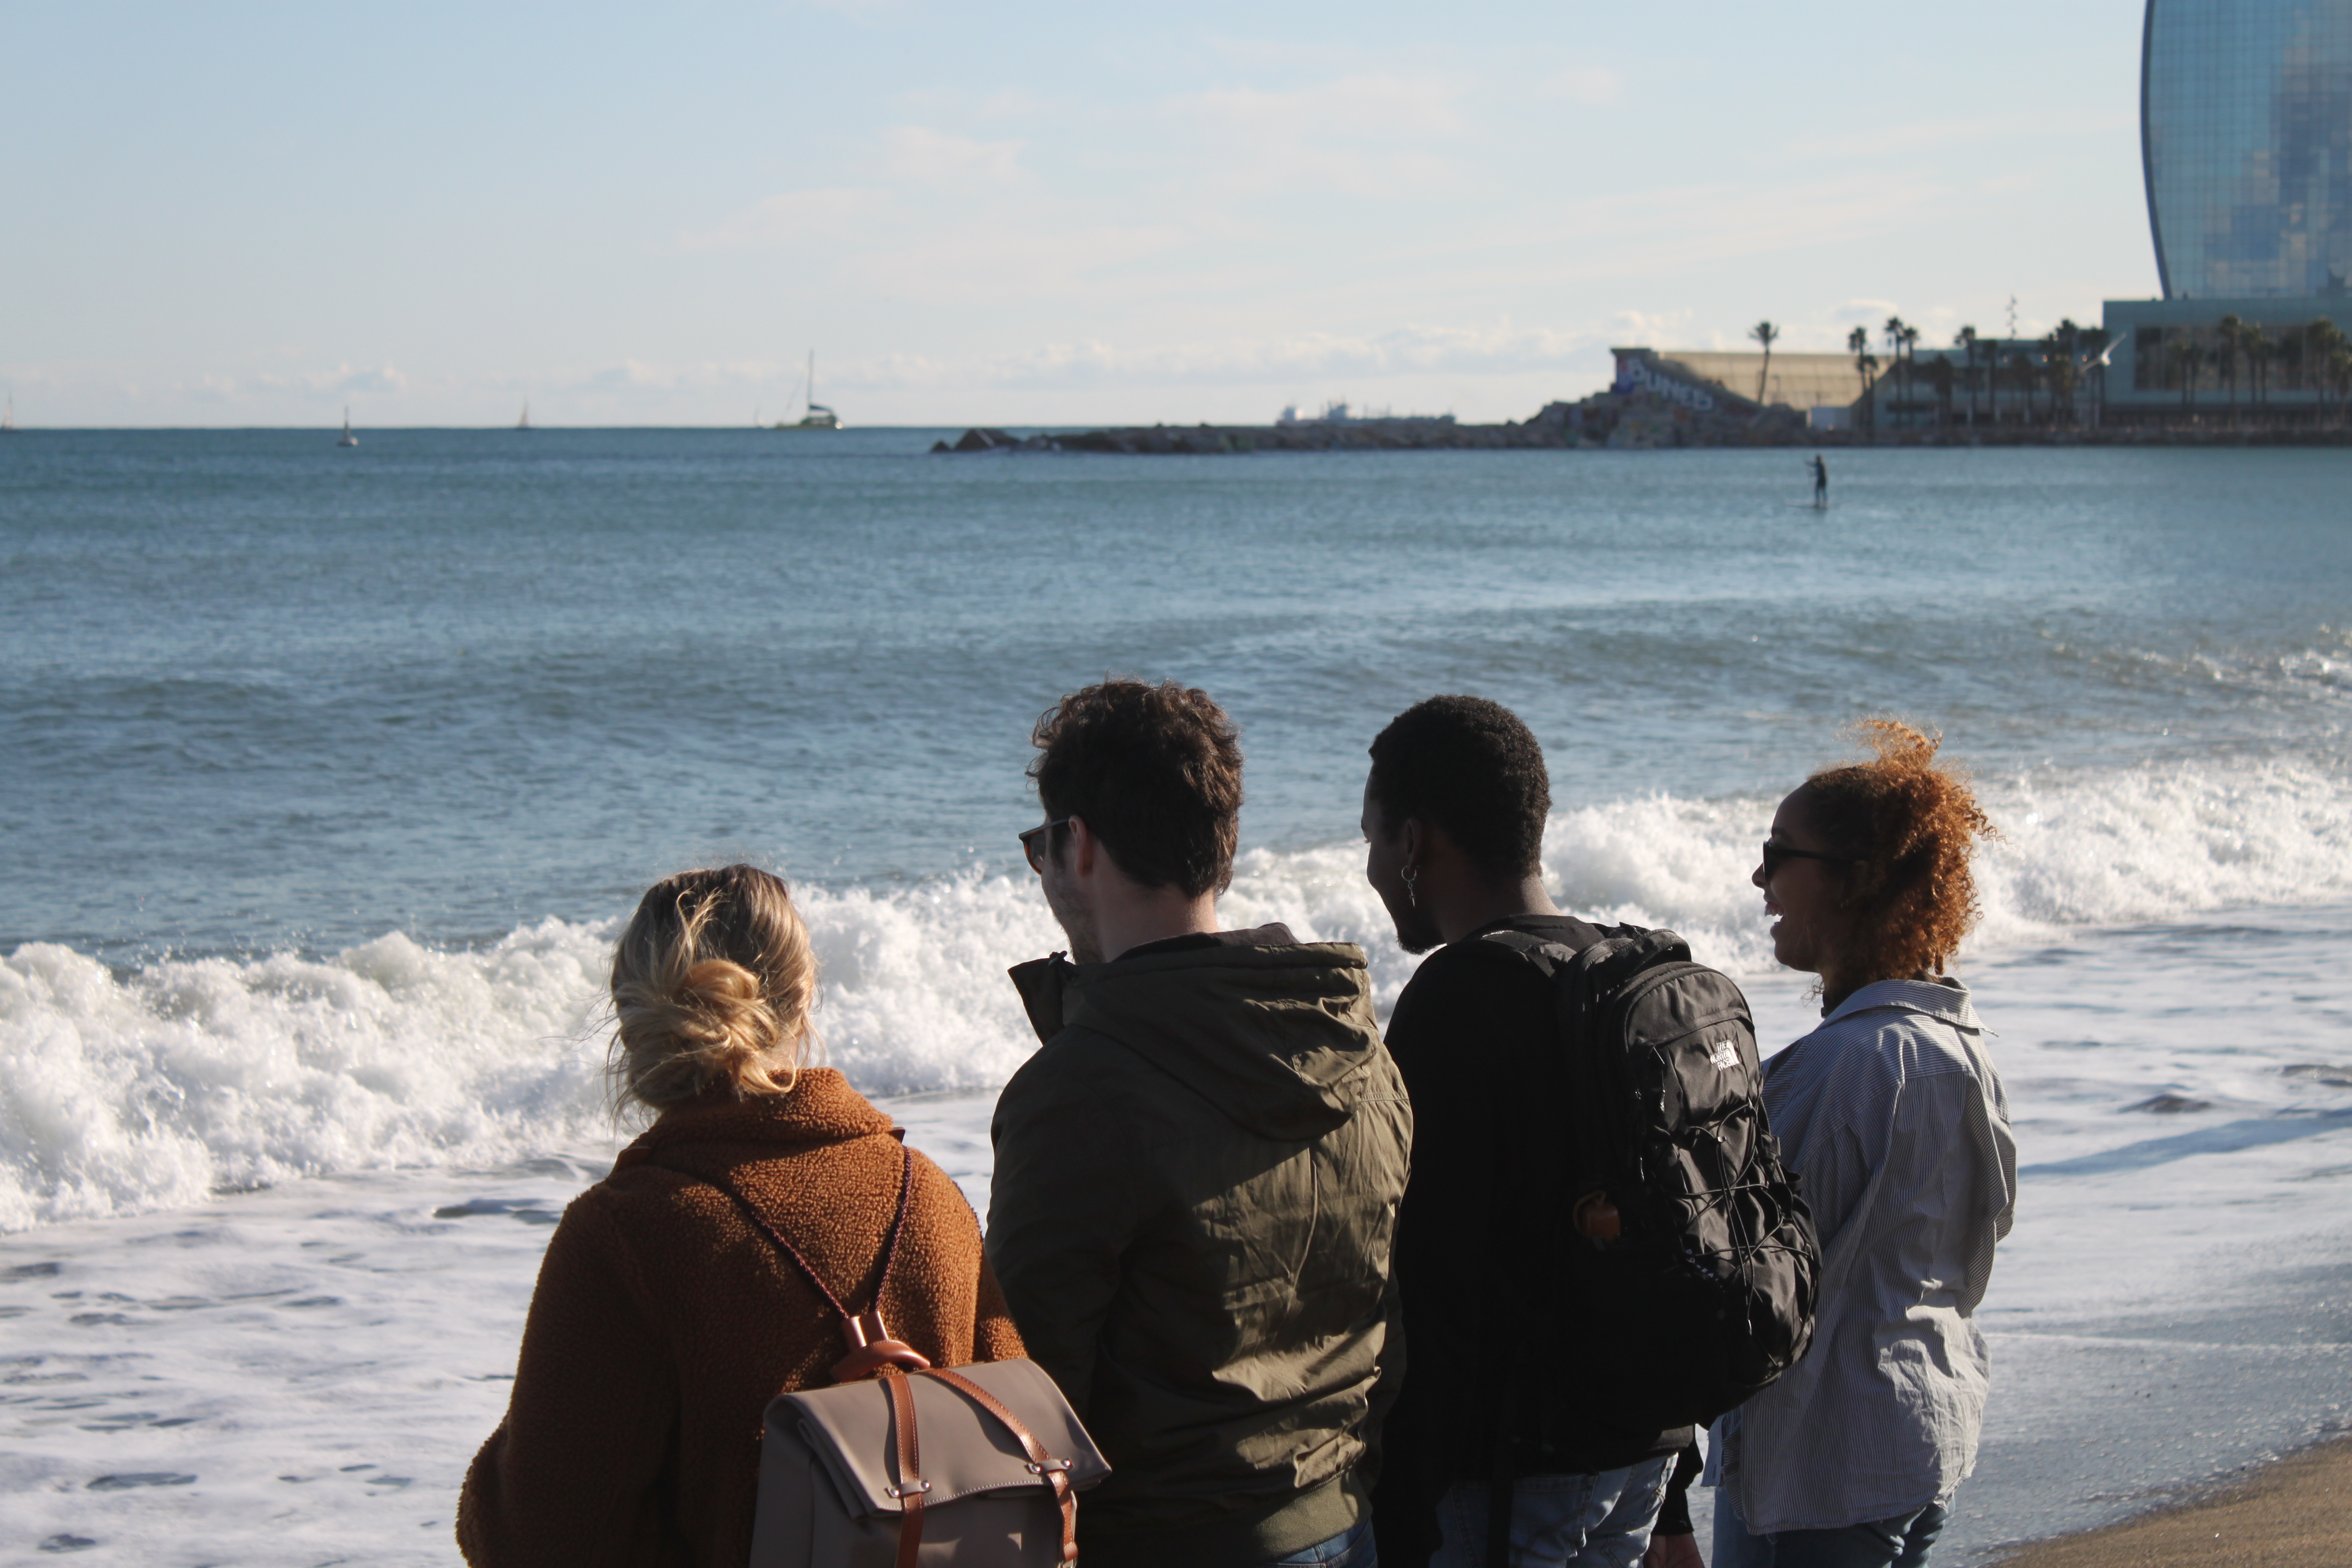 Four people standing near the water on a beach with a person and a building in the background.